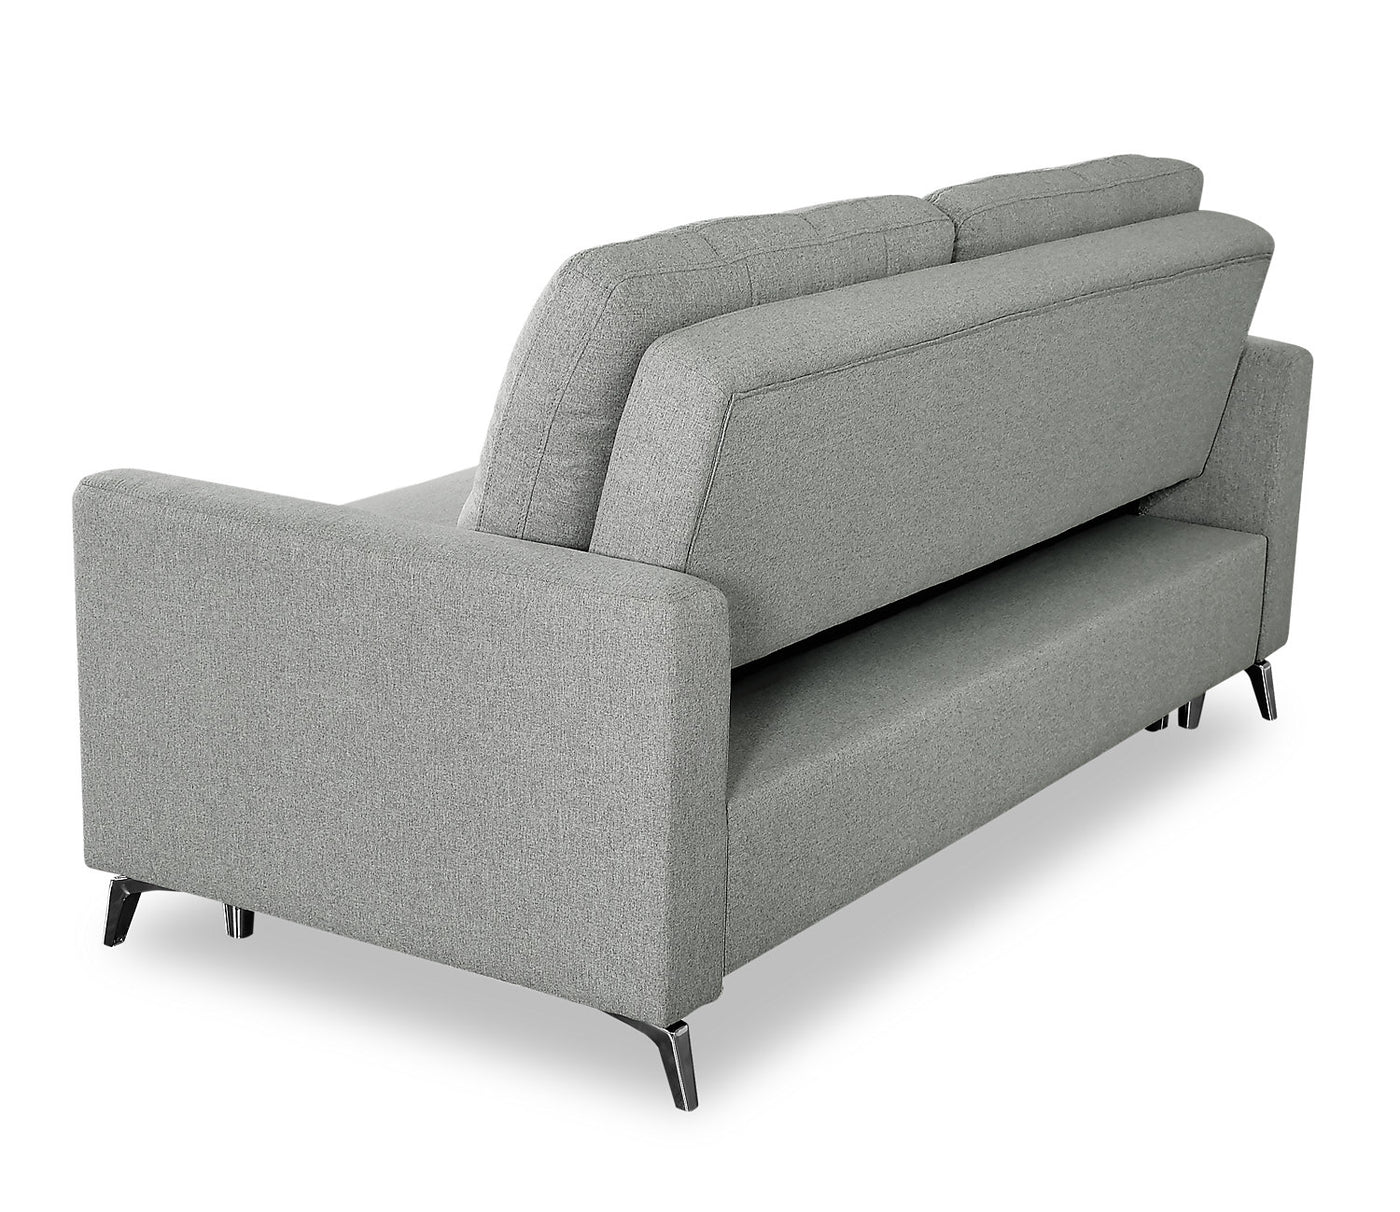 Marvelous Wilson Linen Look Fabric Sleeper Sofa Solis Grey Pabps2019 Chair Design Images Pabps2019Com